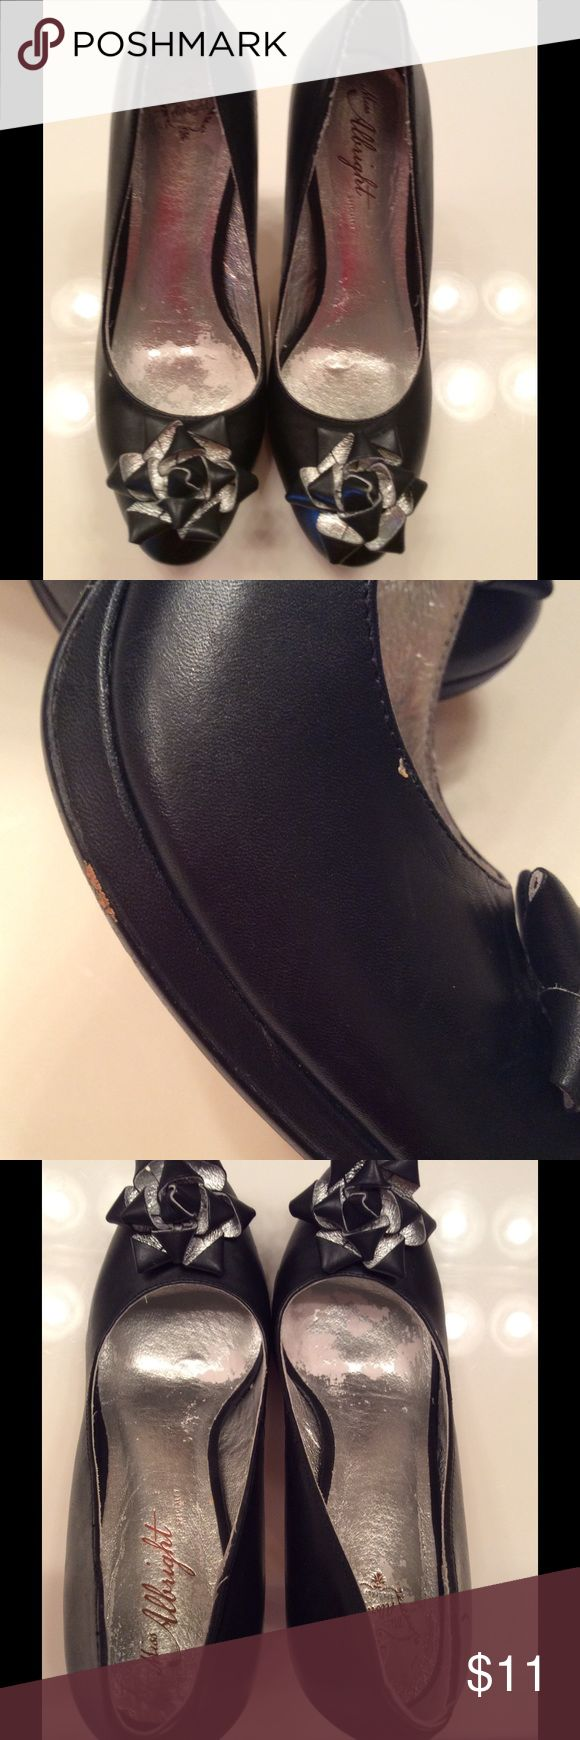 Cute black and silver high heel shoes In good condition but has some minor scratches one of the shoe. Pictures are posted. Please let me know if you have any questions. The shoes are size 8 but being honest it's a very snug size 8. I want to say it's more like  7 in a half. But I am not familiar with the brand Miss Albright  Shoes Heels